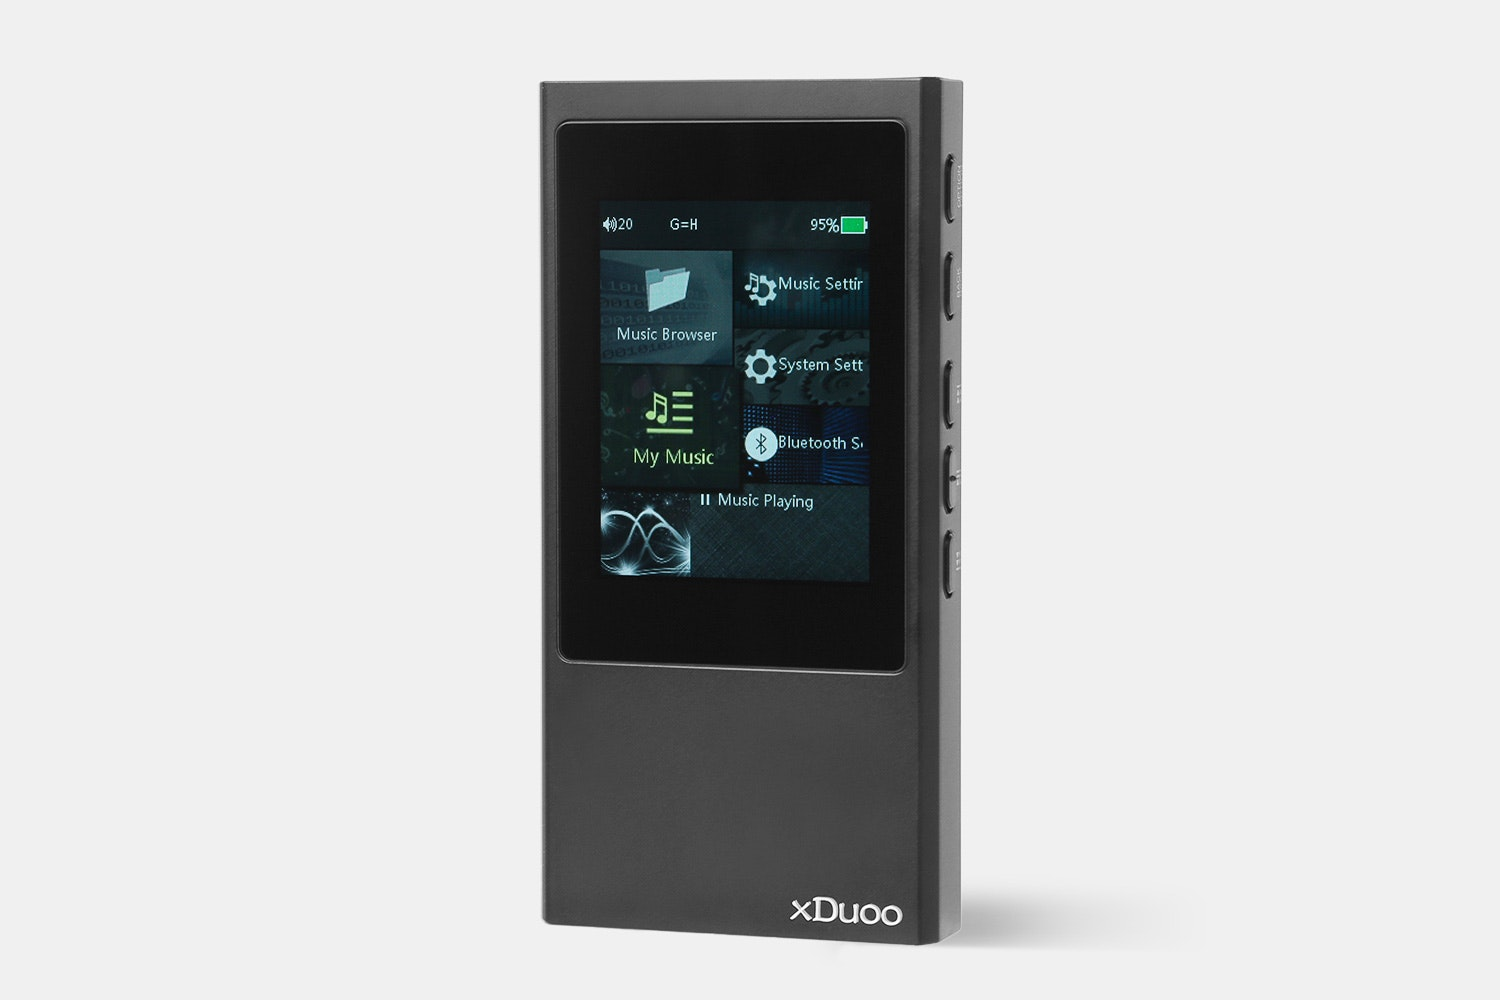 xDuoo X20 Digital Audio Player